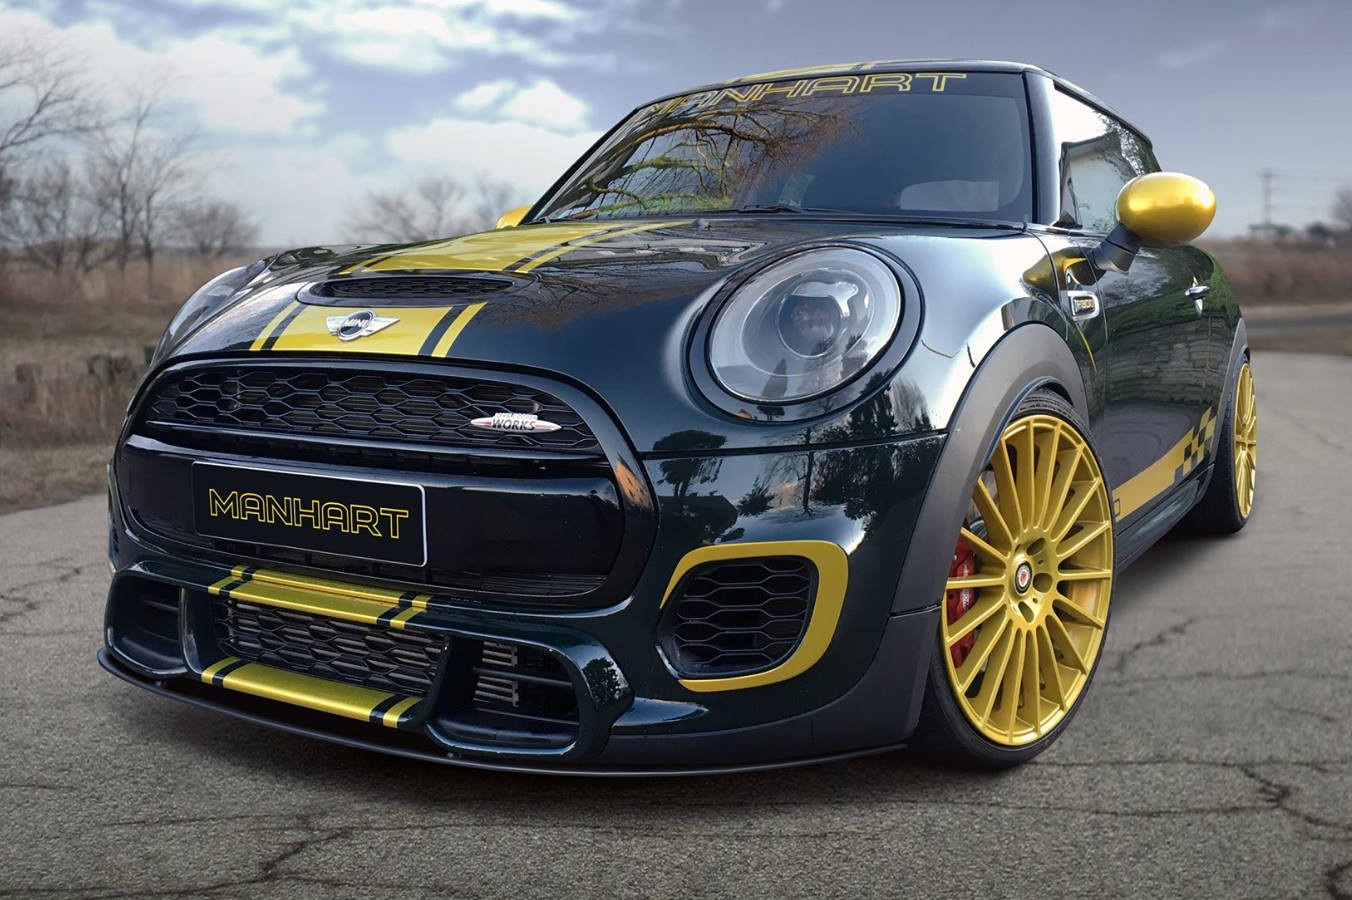 Manhart Mini John Cooper Works Tuning F56 Mit 300 Ps